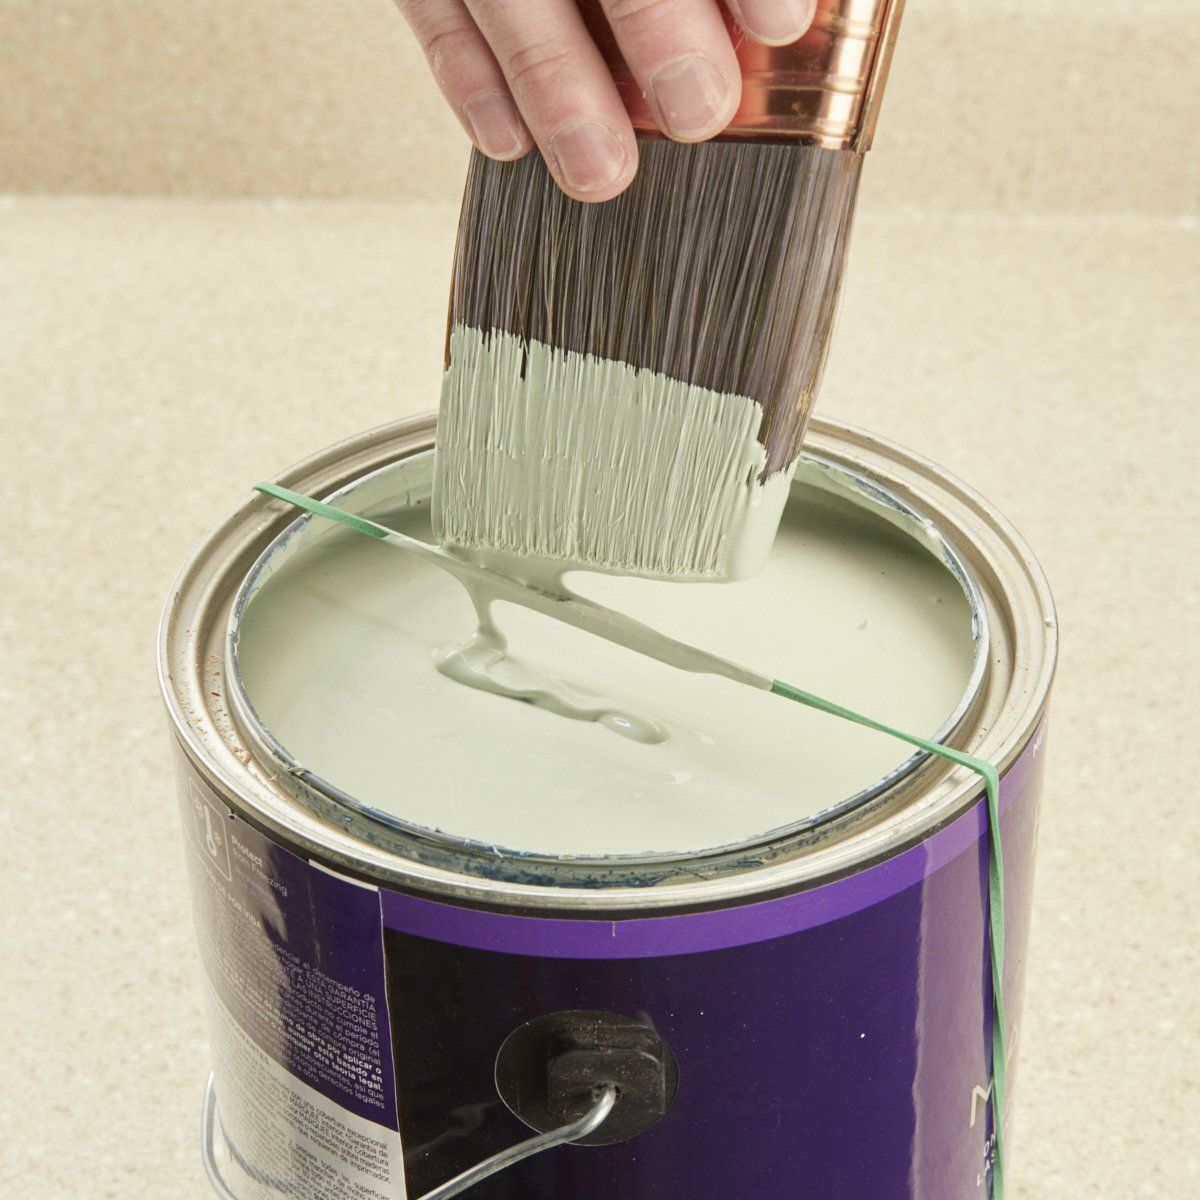 Rubber band paint can accessory handy tips pinterest painting